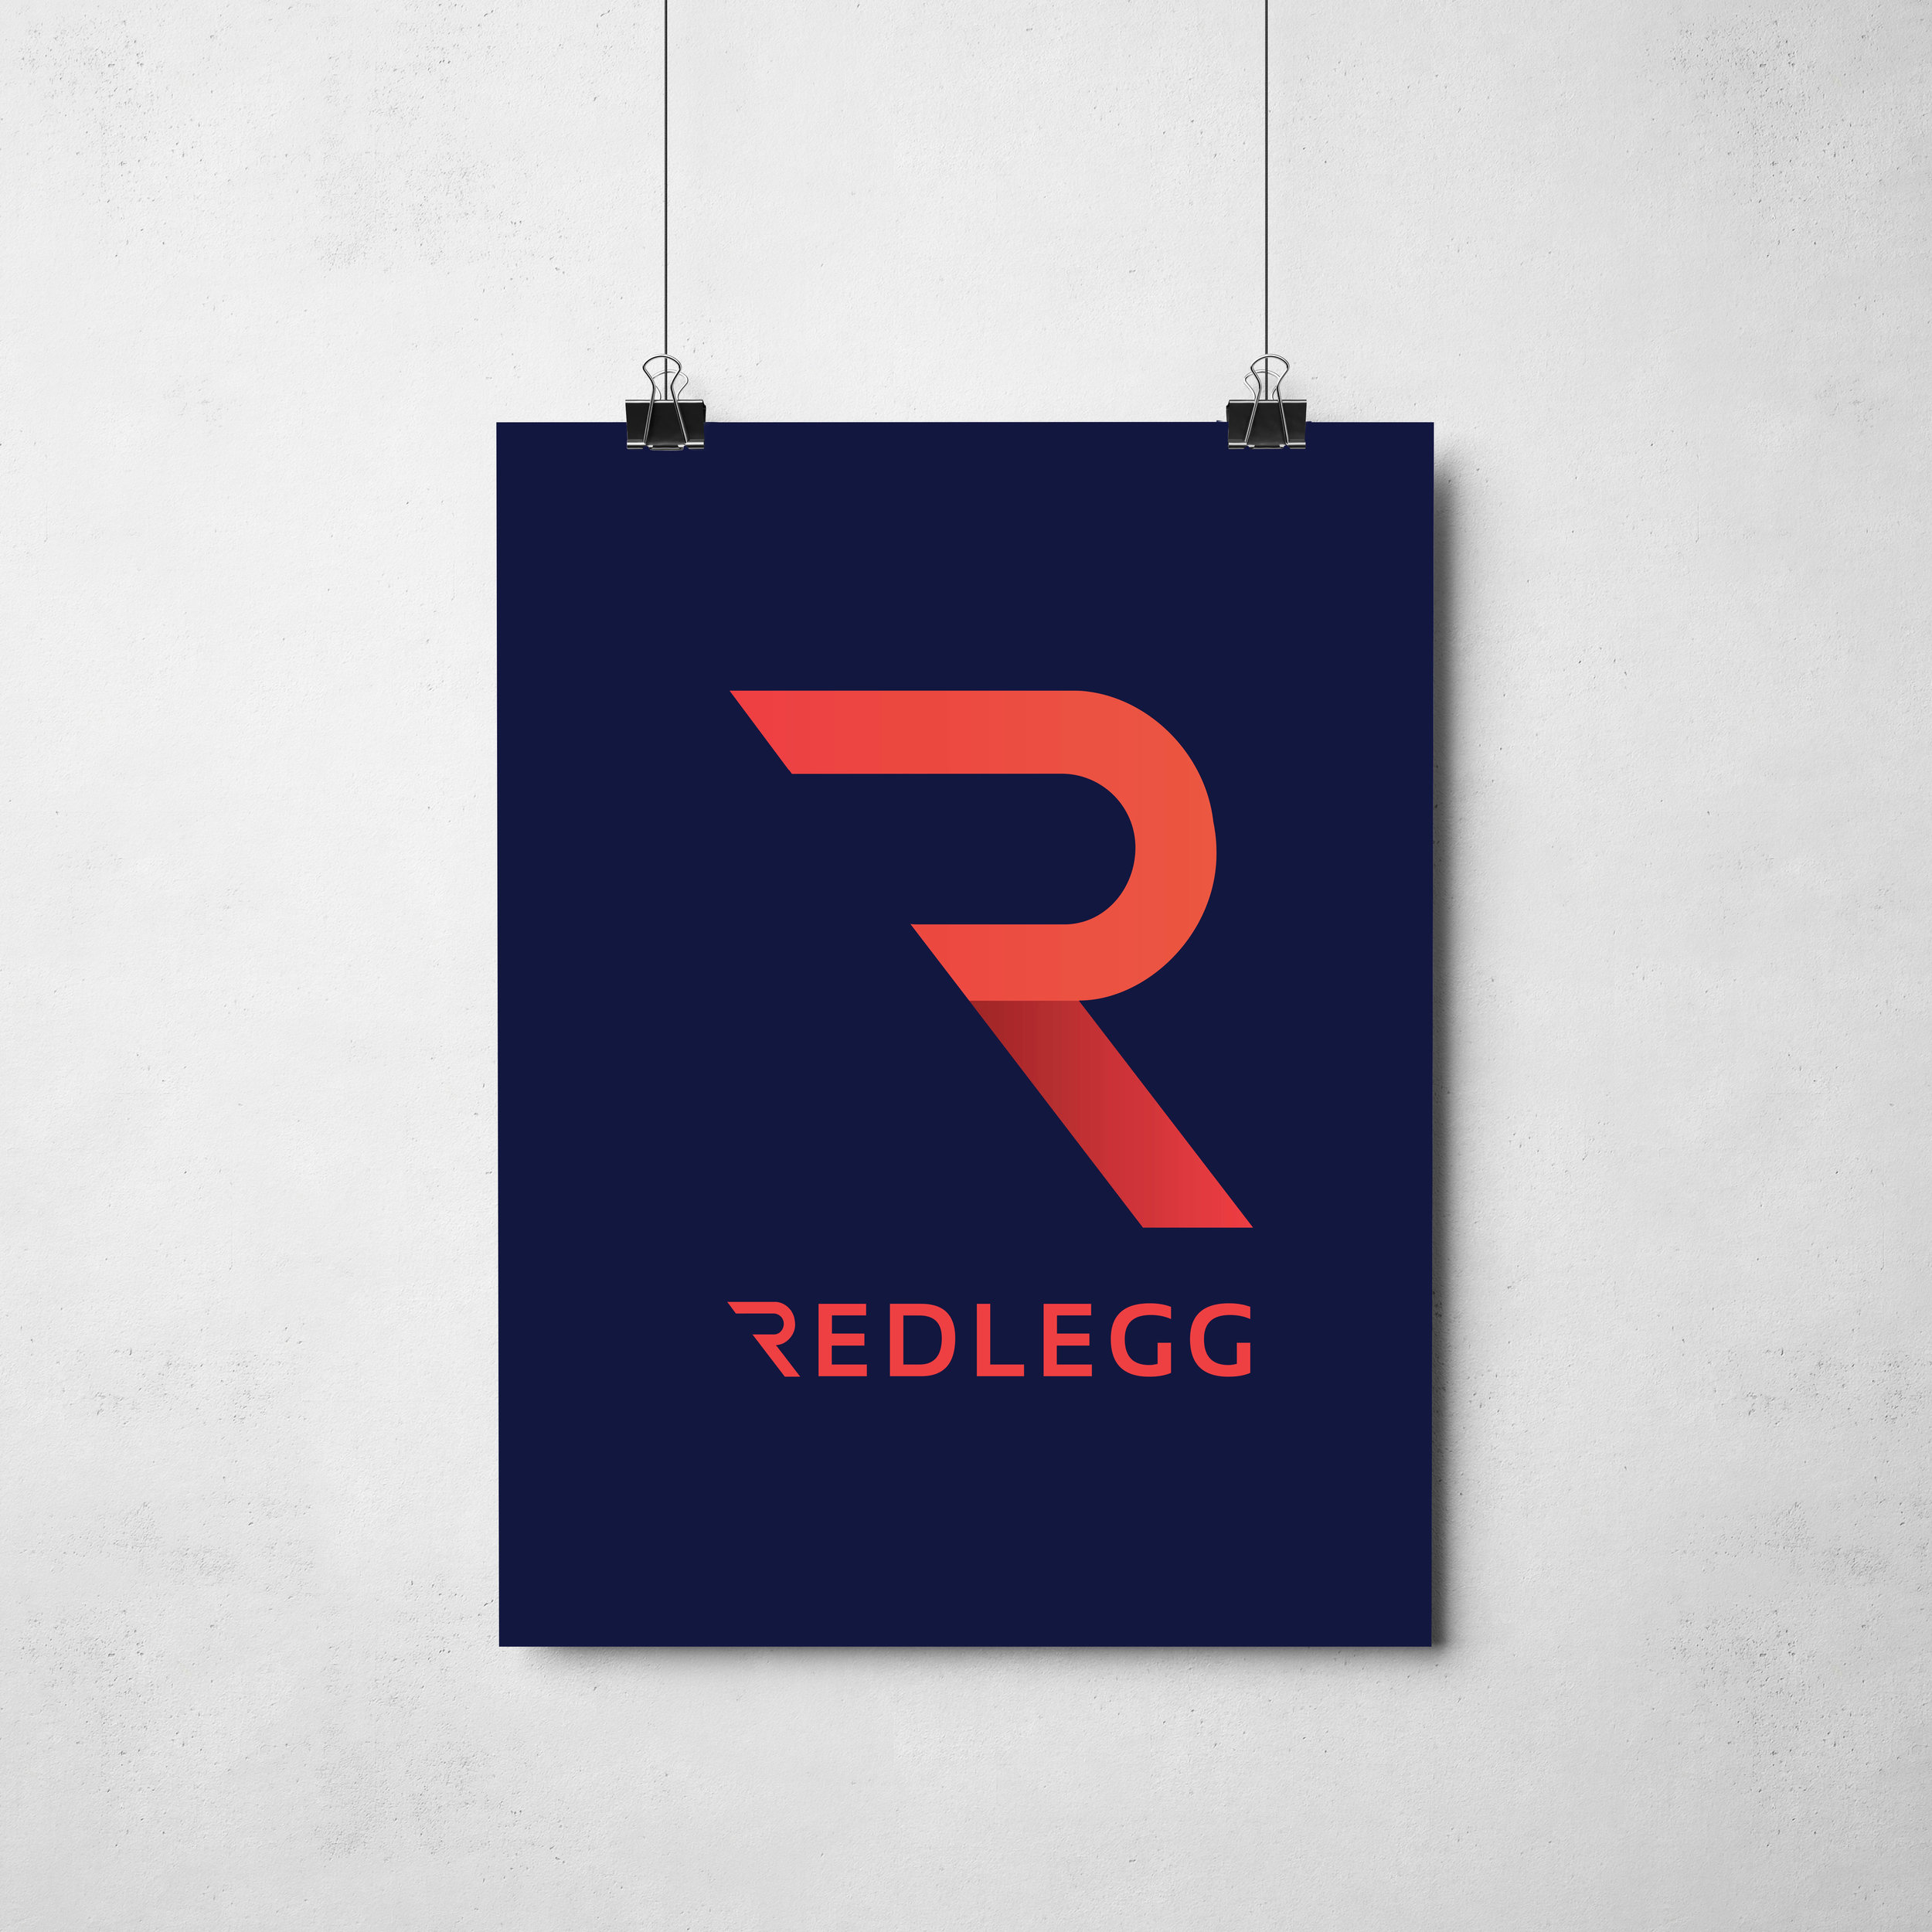 RedLegg Cyber Security - I began working with RedLegg in the fall of 2018 and have been their freelance graphic designer ever since! I help the marketing manager bring his visions to life. Using existing brand guidelines and established identity, I create one-sheets, social media ads, website layouts, holiday stationary, presentation decks, informational ebooks, and more. The slideshow is a culmination of some of my work with RedLegg over the past 10 months.